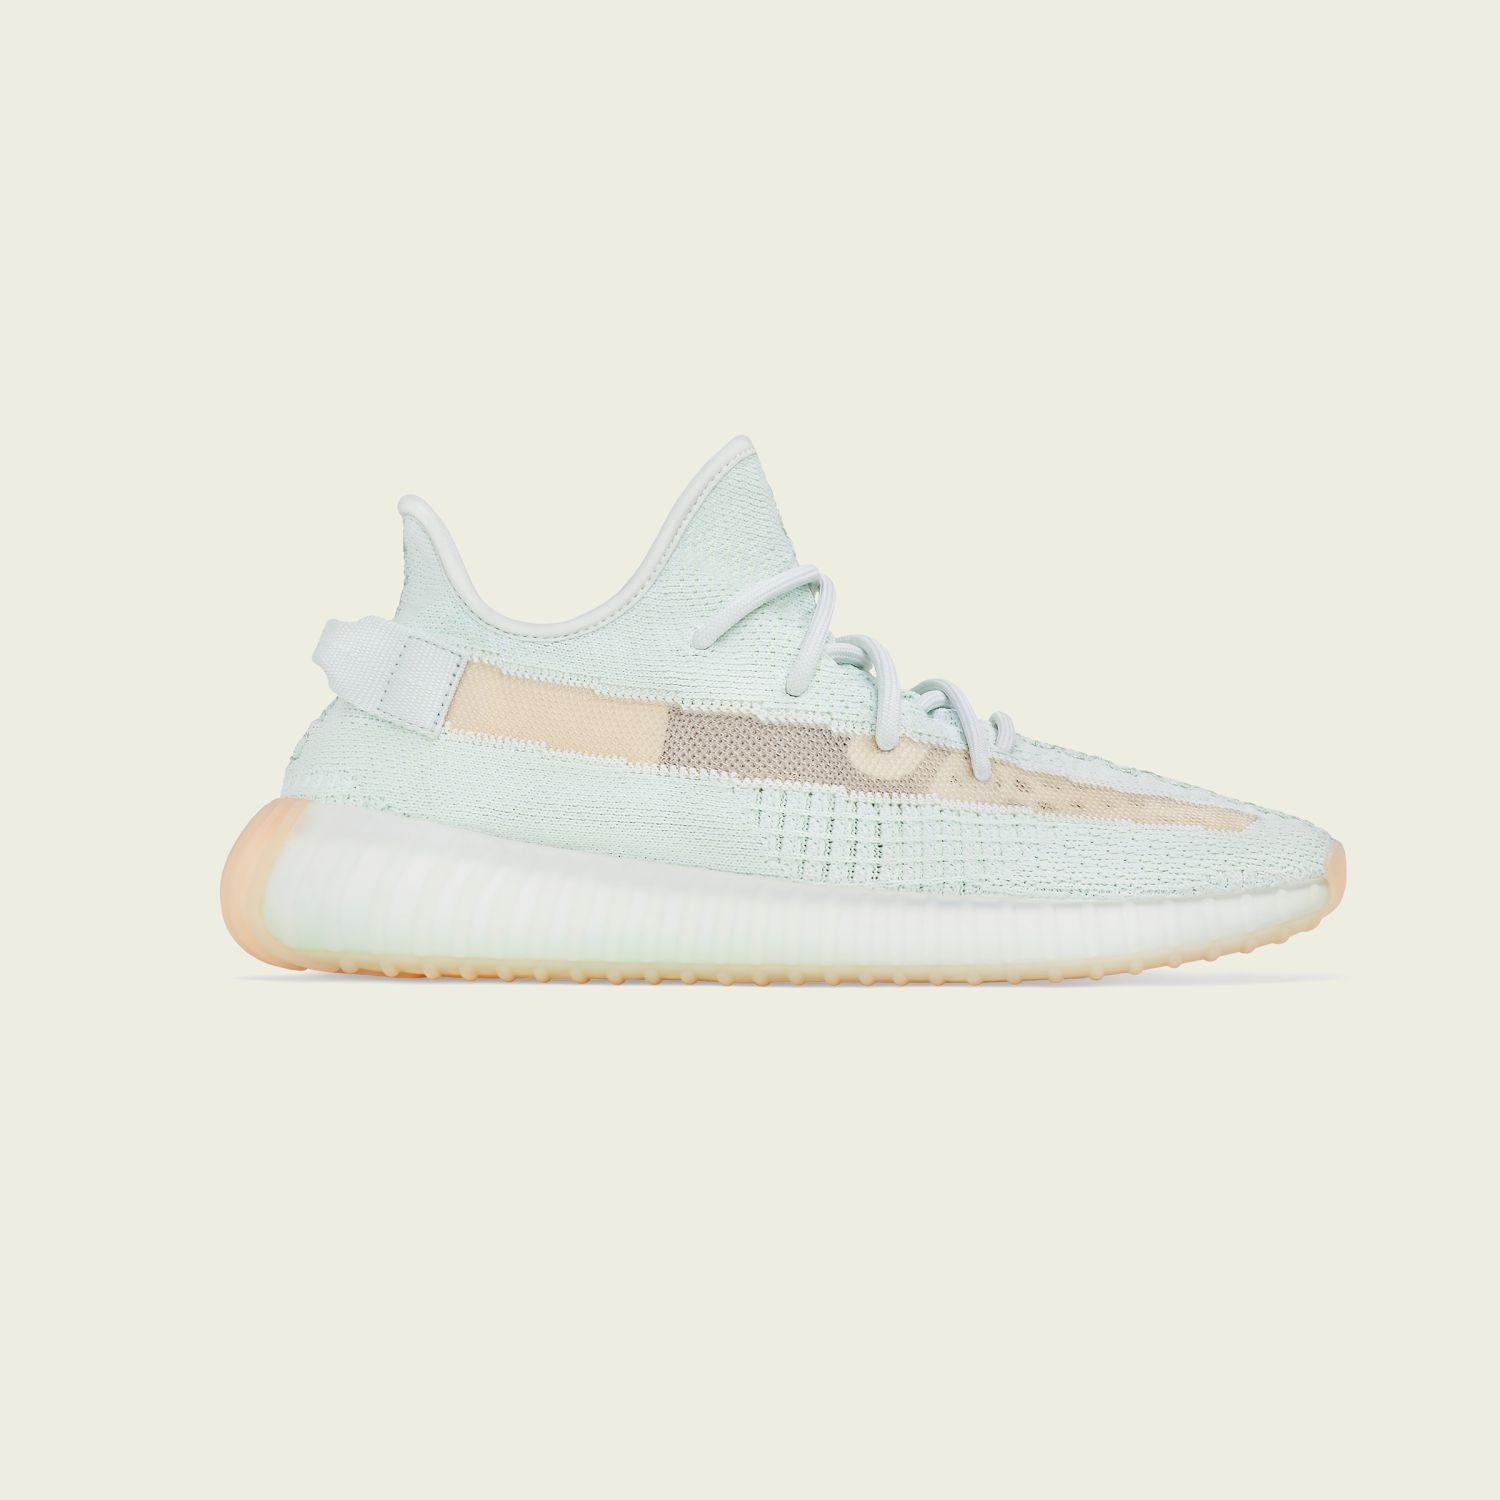 adidas-yeezy-boost-350-v2-hyperspace-eg7491-release-20190316